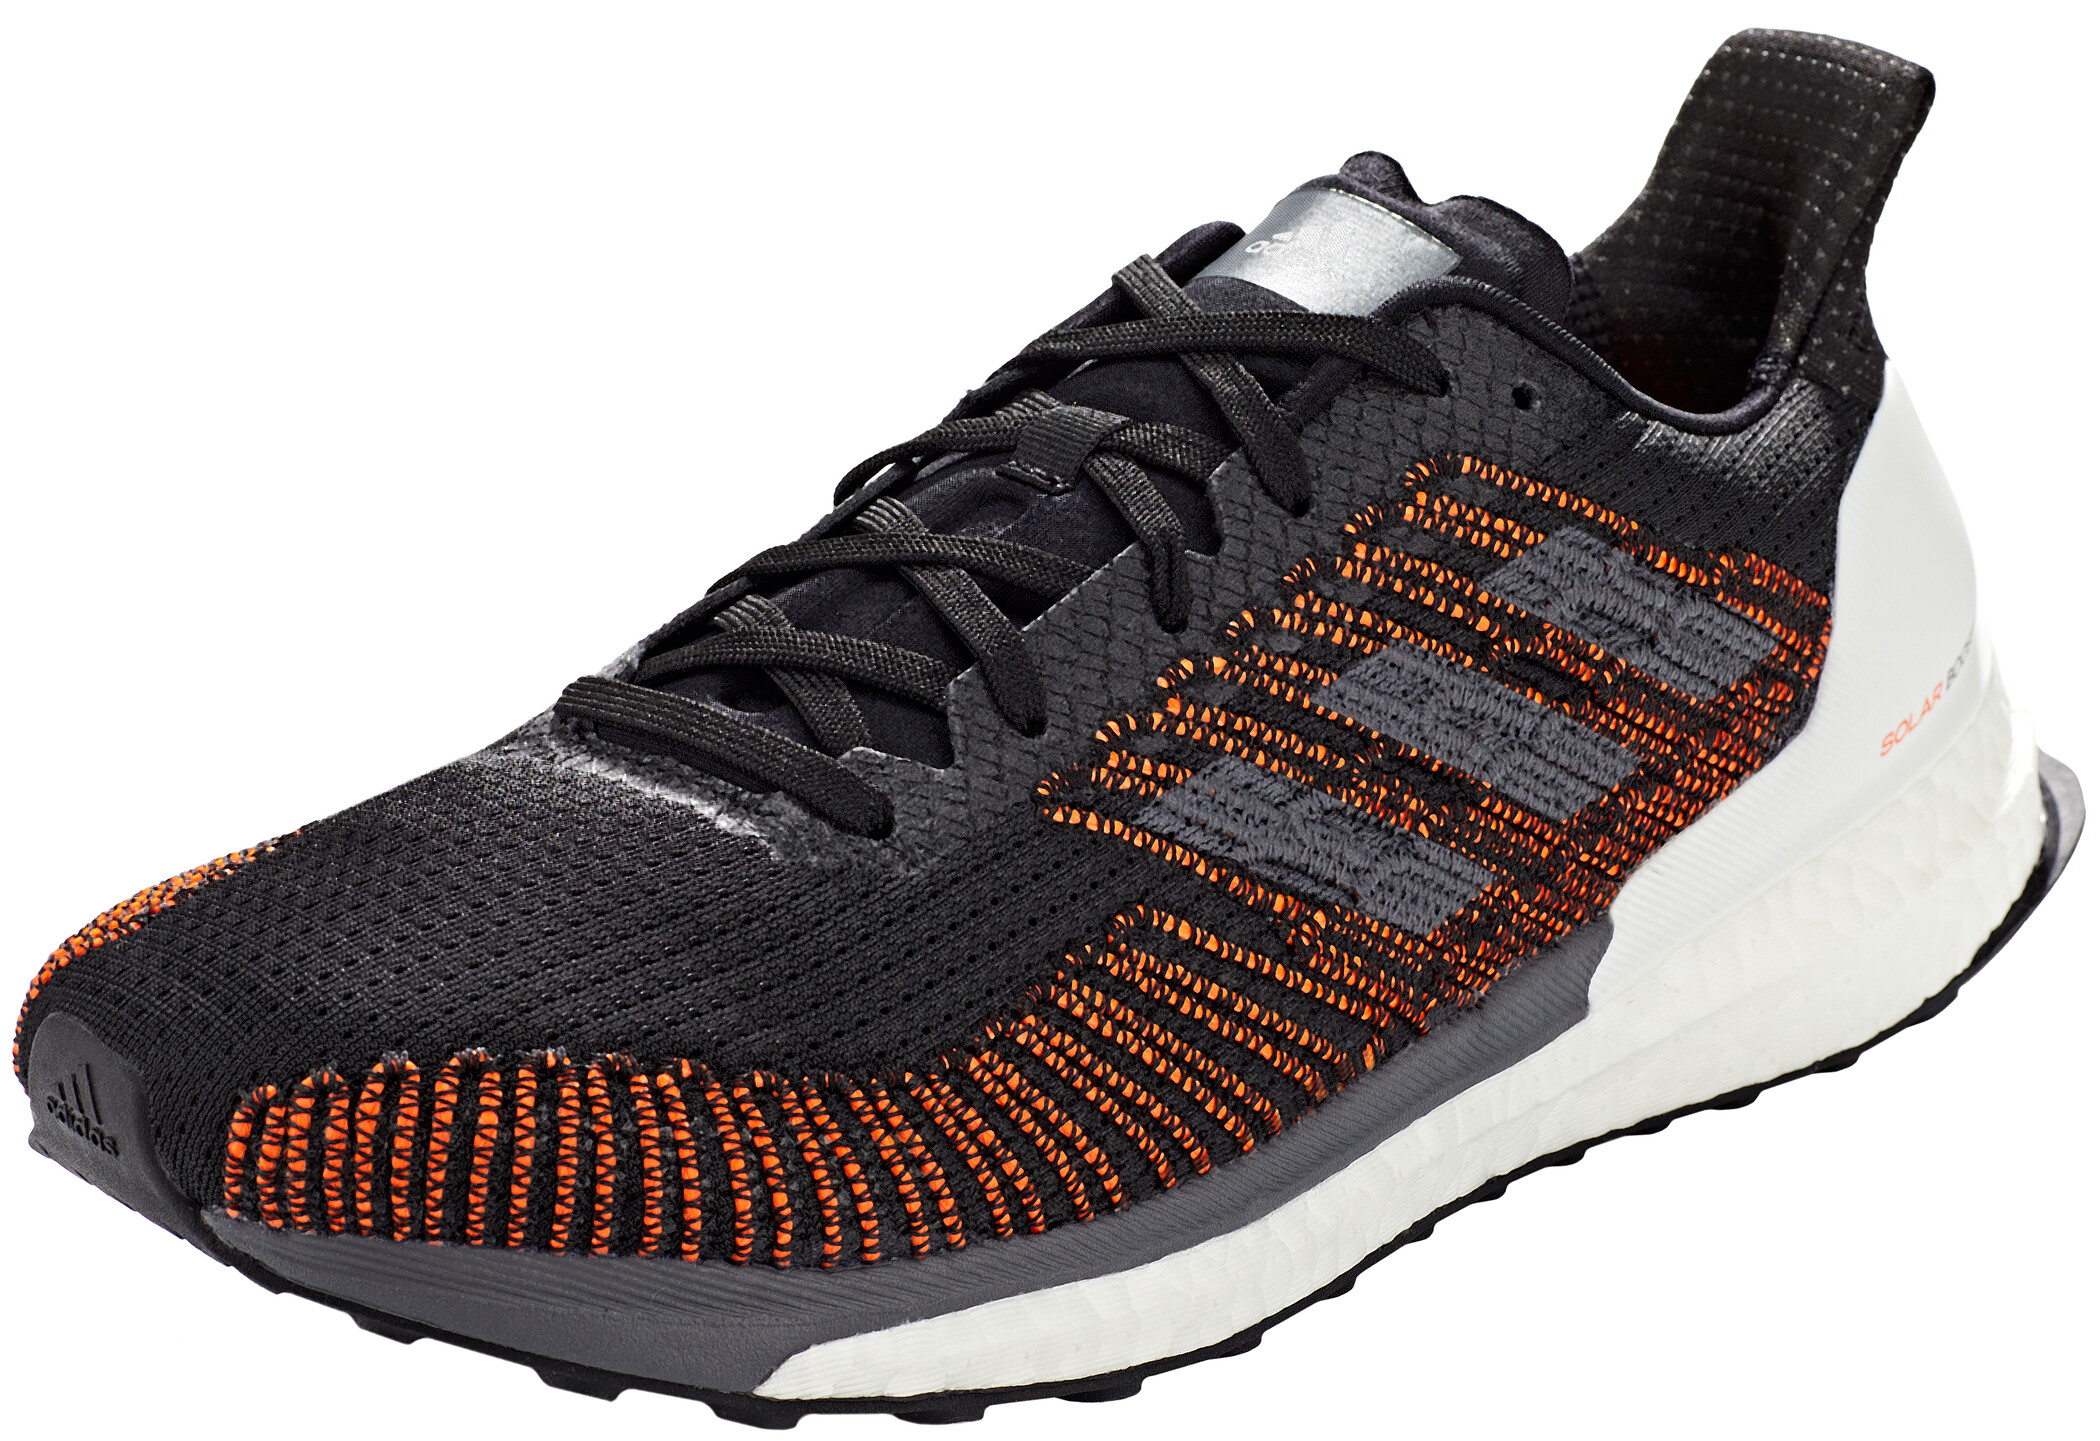 Adidas Zone Boost Sports Running Shoes RUBBER Men Shoes